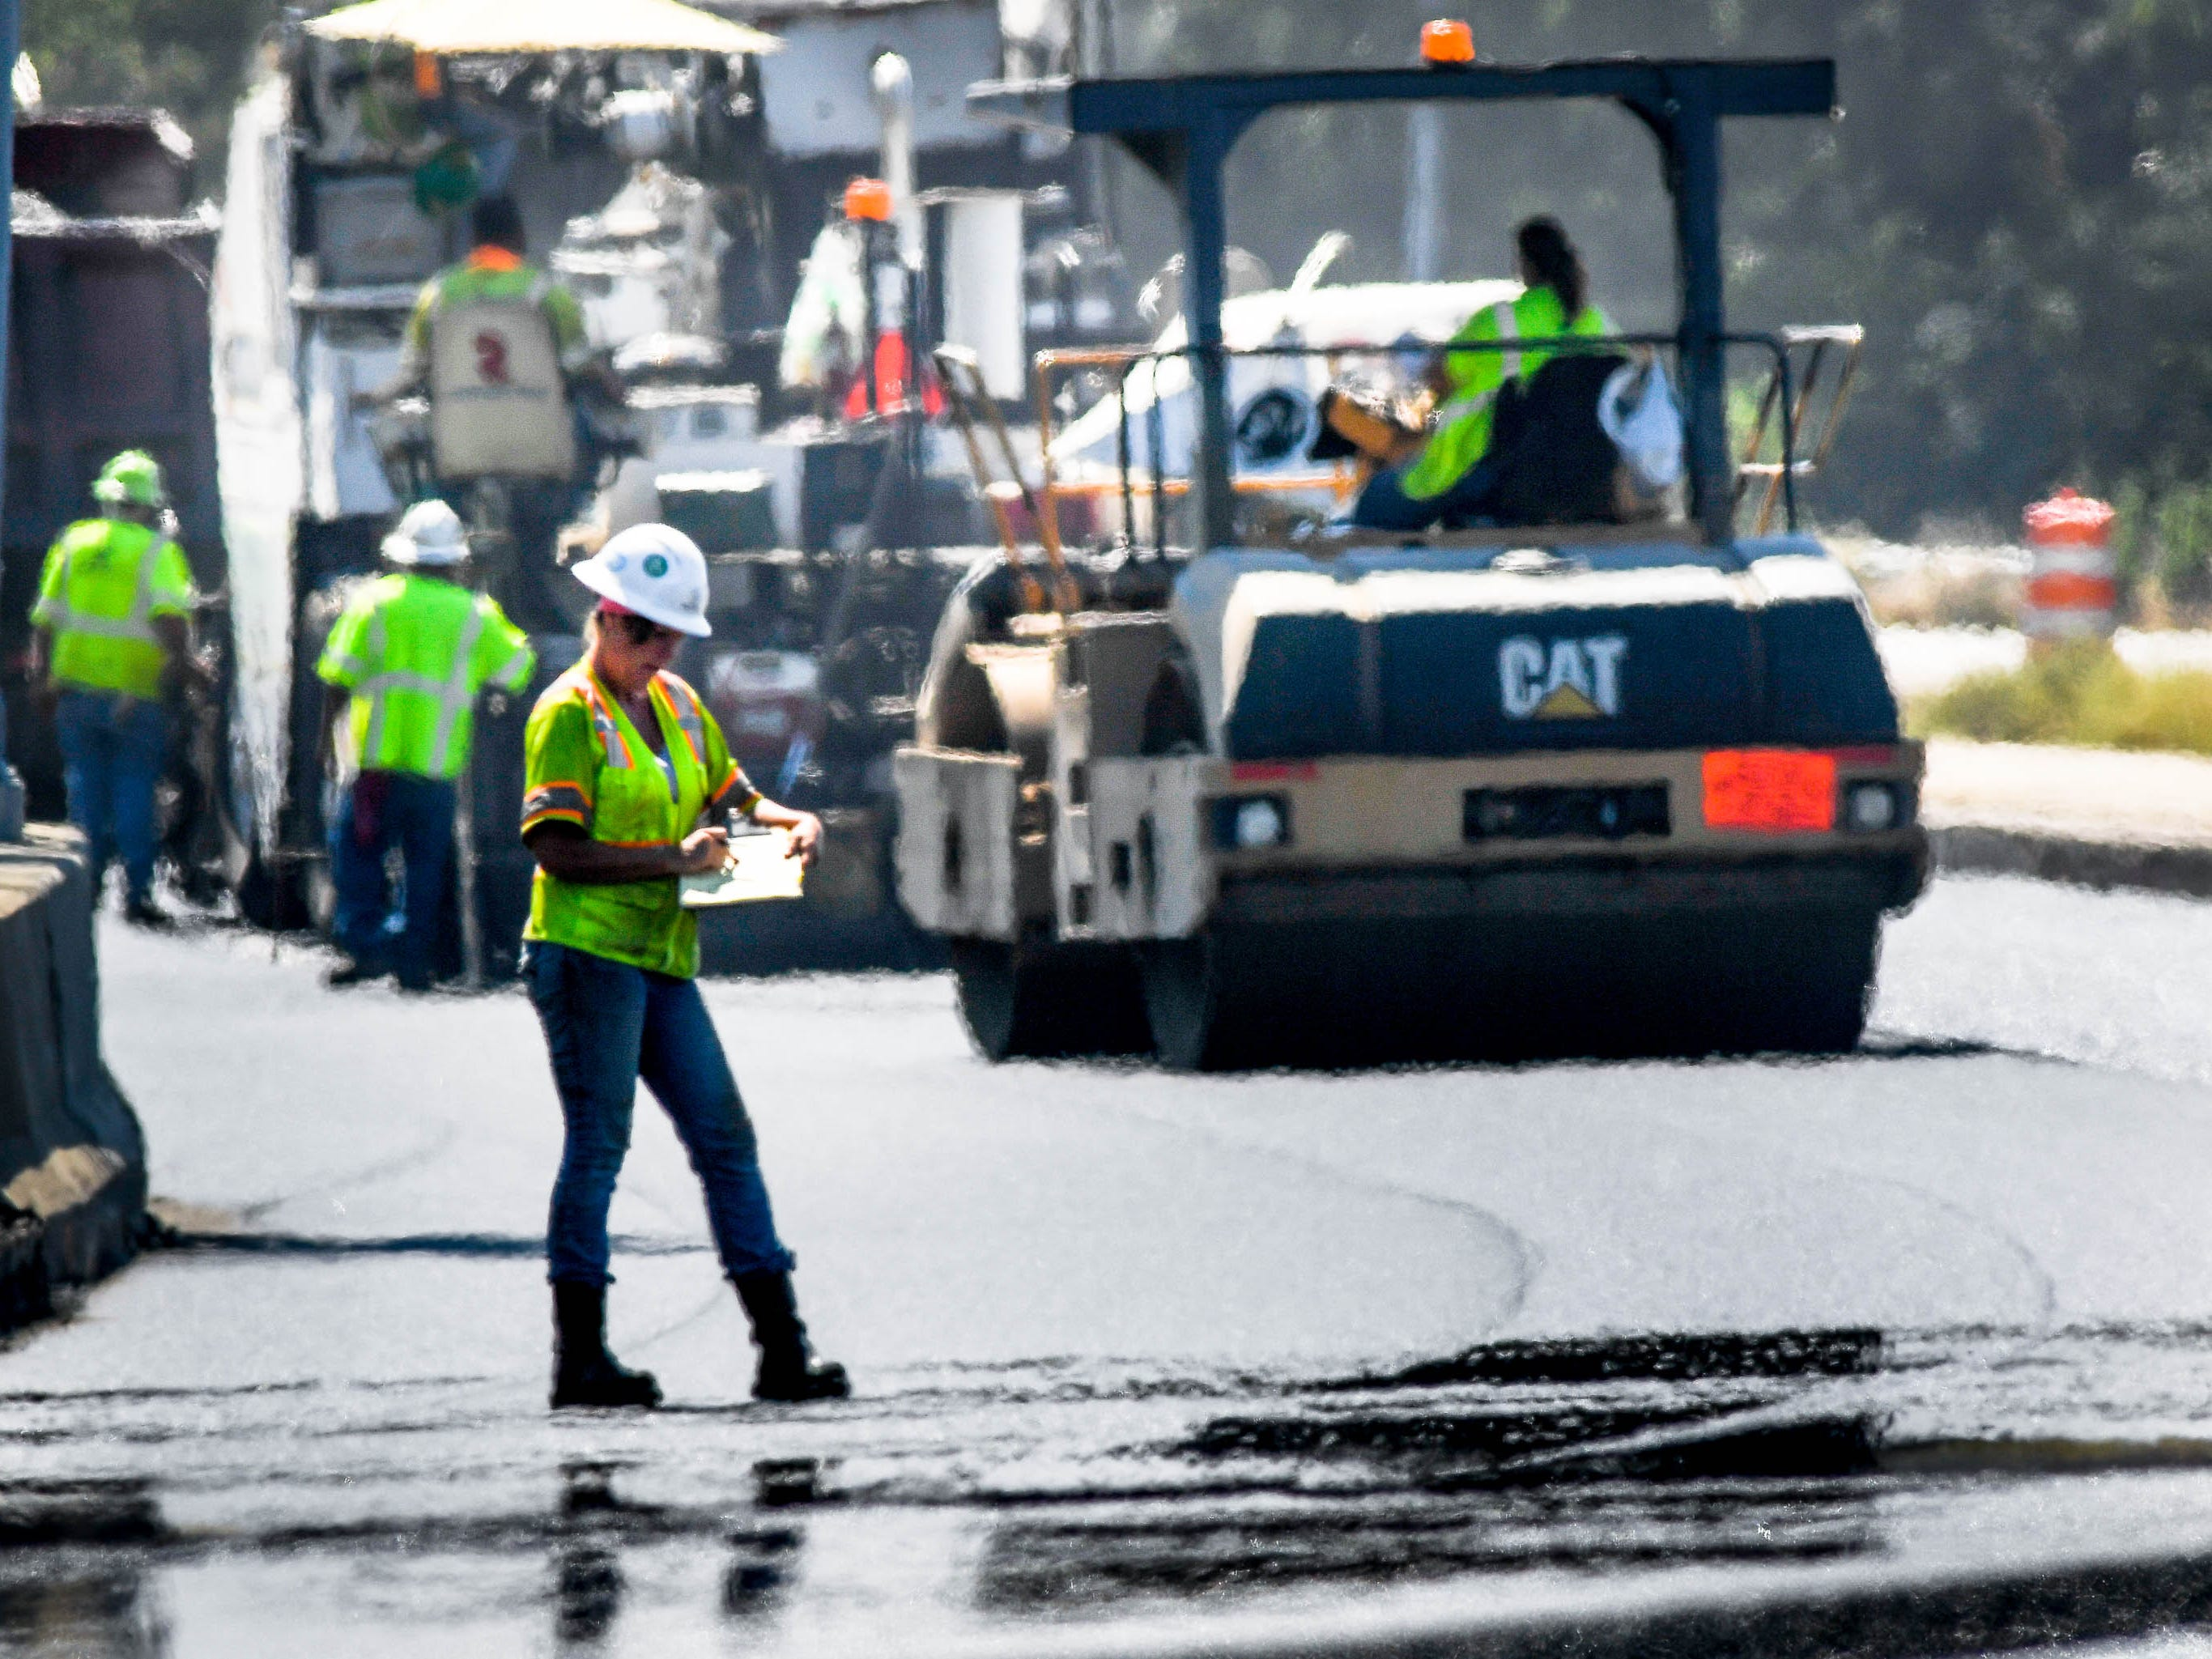 Heat shimmers off the pavement as E&B Paving worker Denise Davis writes down readings after gaging the depth of the freshly laid asphalt on the U.S. 41 bridge replacement project Thursday, September 20, 2018.